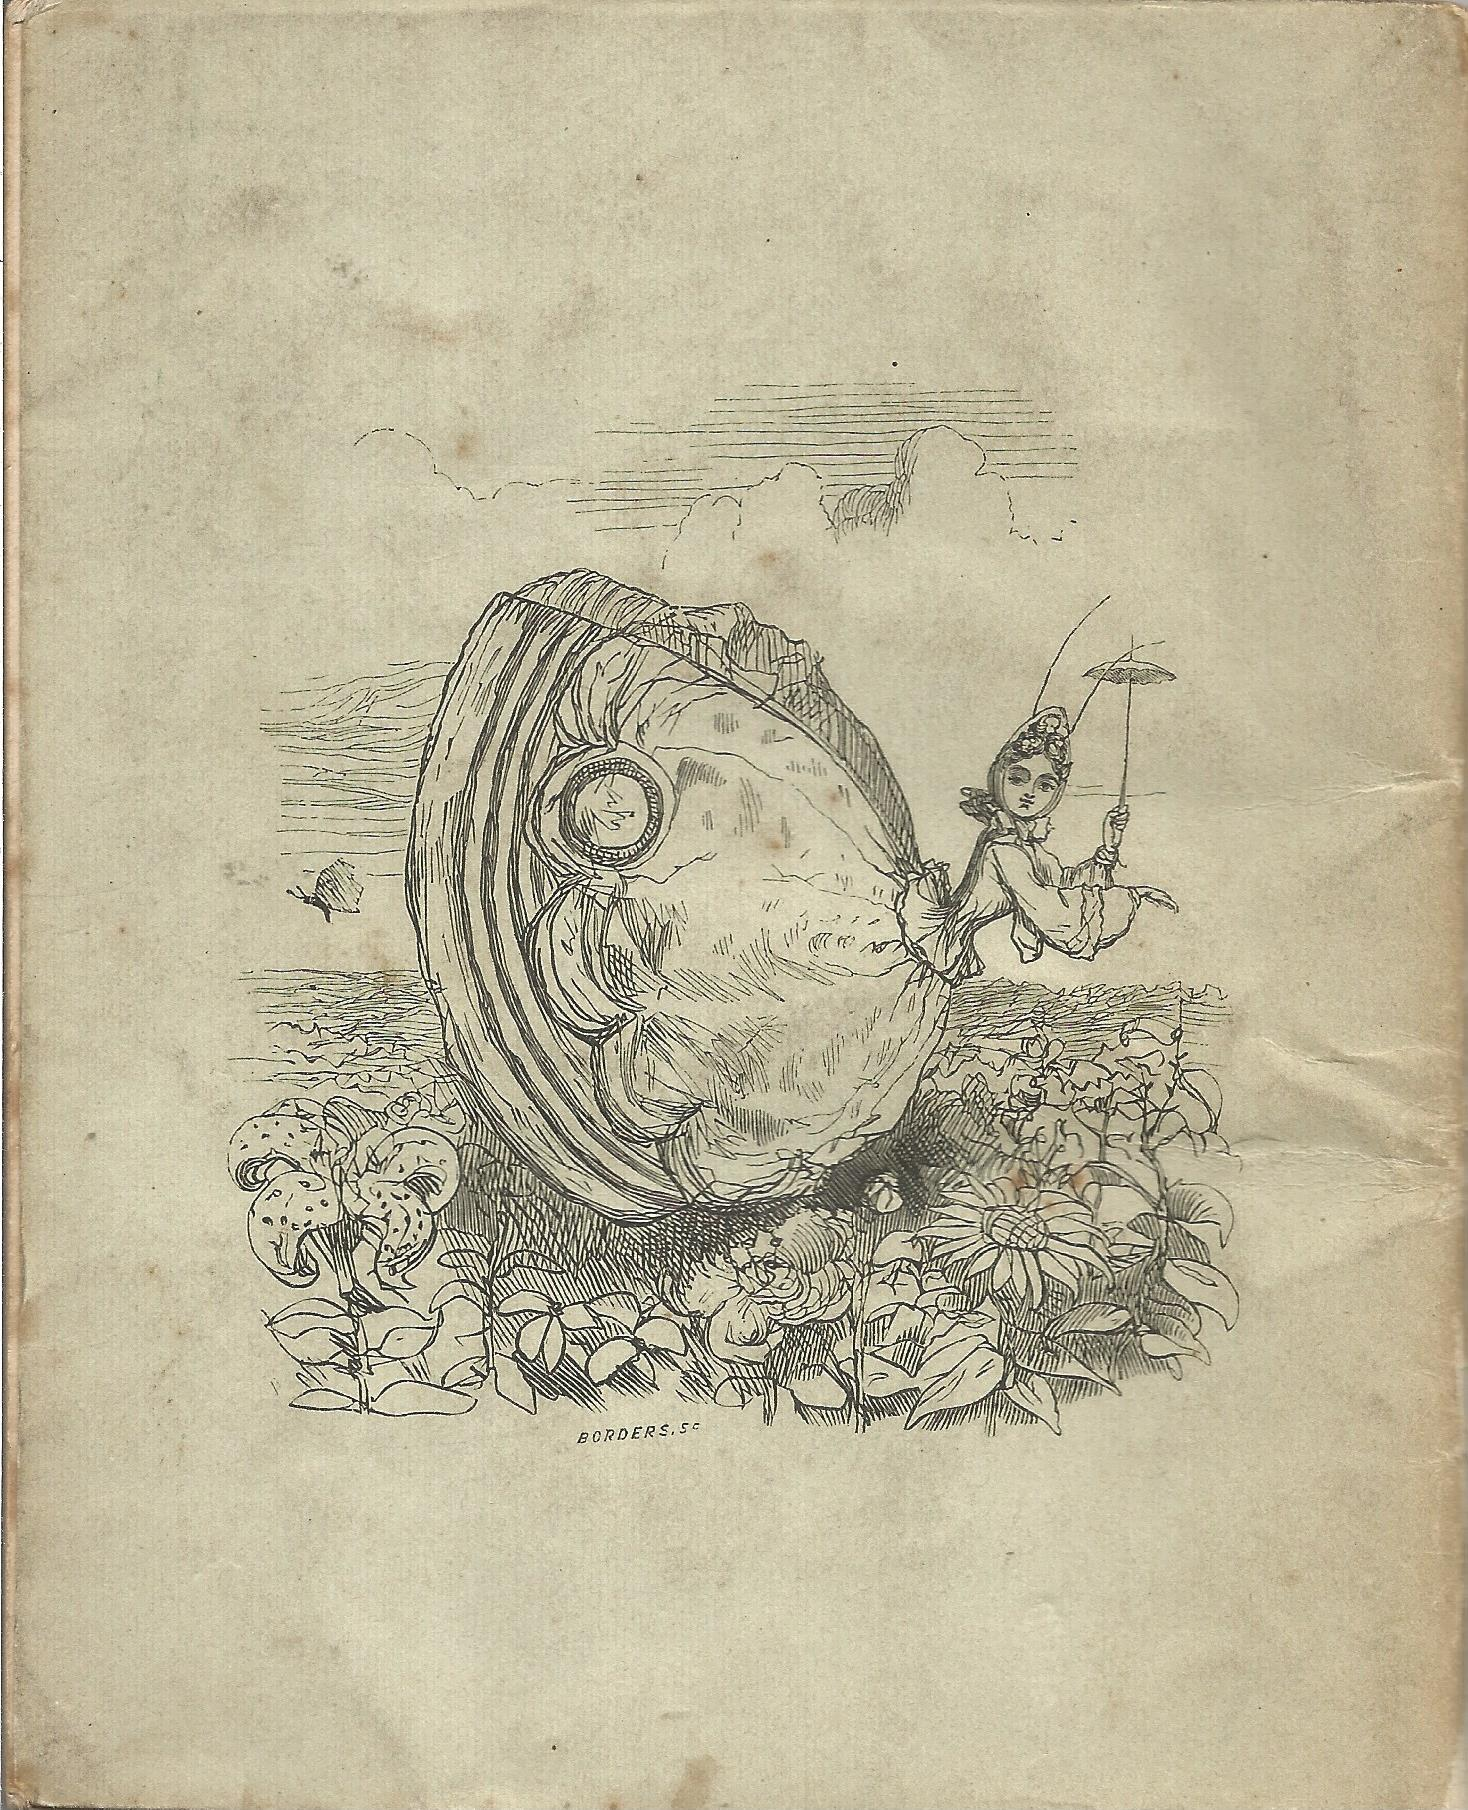 Softback Book The Glories of Crinoline by A Doctor of Philosophy third Edition 1866 published by - Image 2 of 4